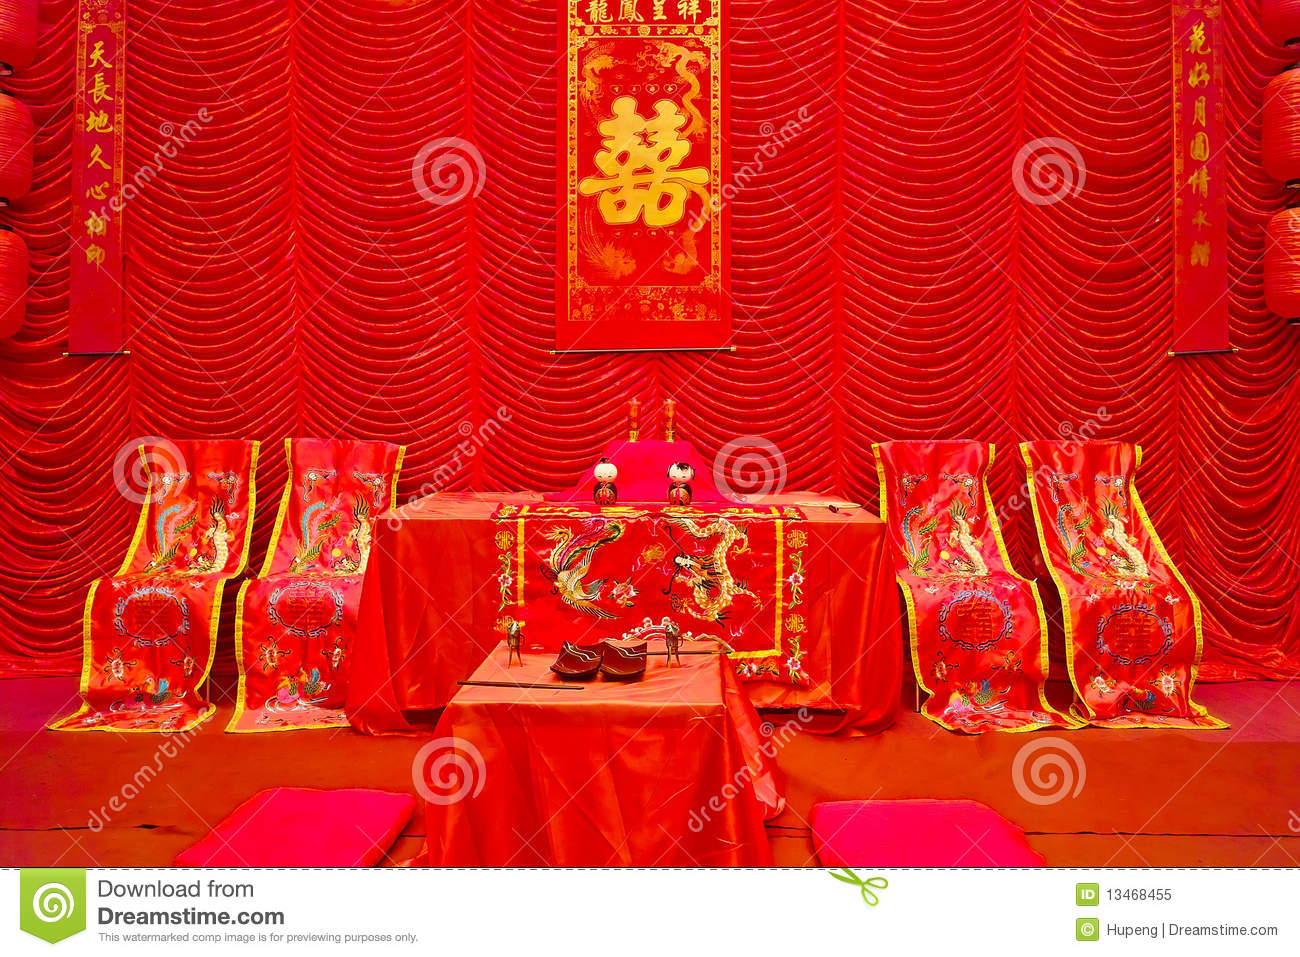 Chinese traditional wedding setting royalty free stock for Asian wedding bed decoration